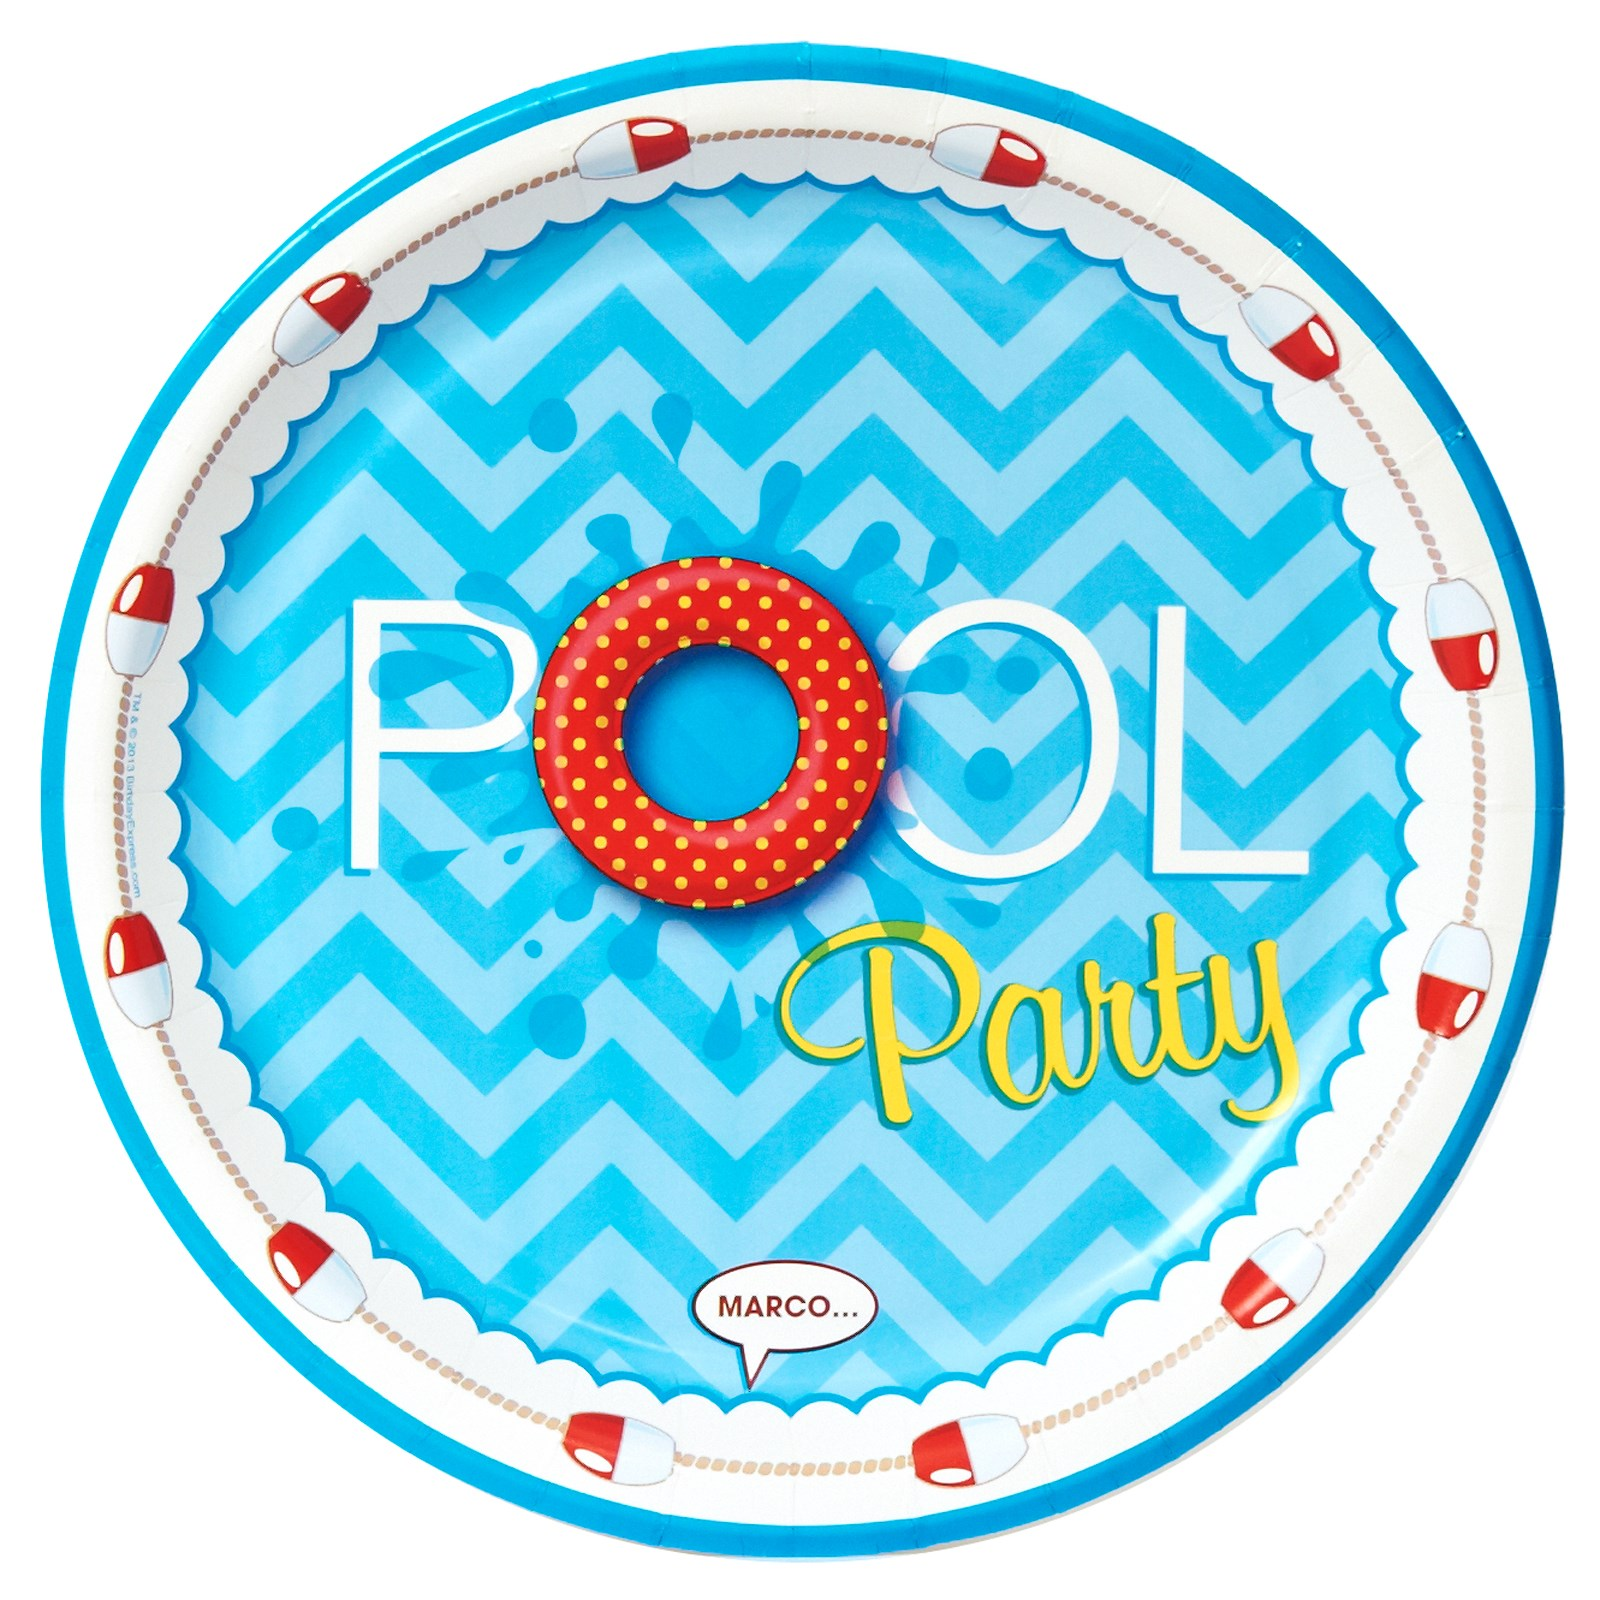 Splashin Pool Party Dinner Plates on Beach Printables Pack